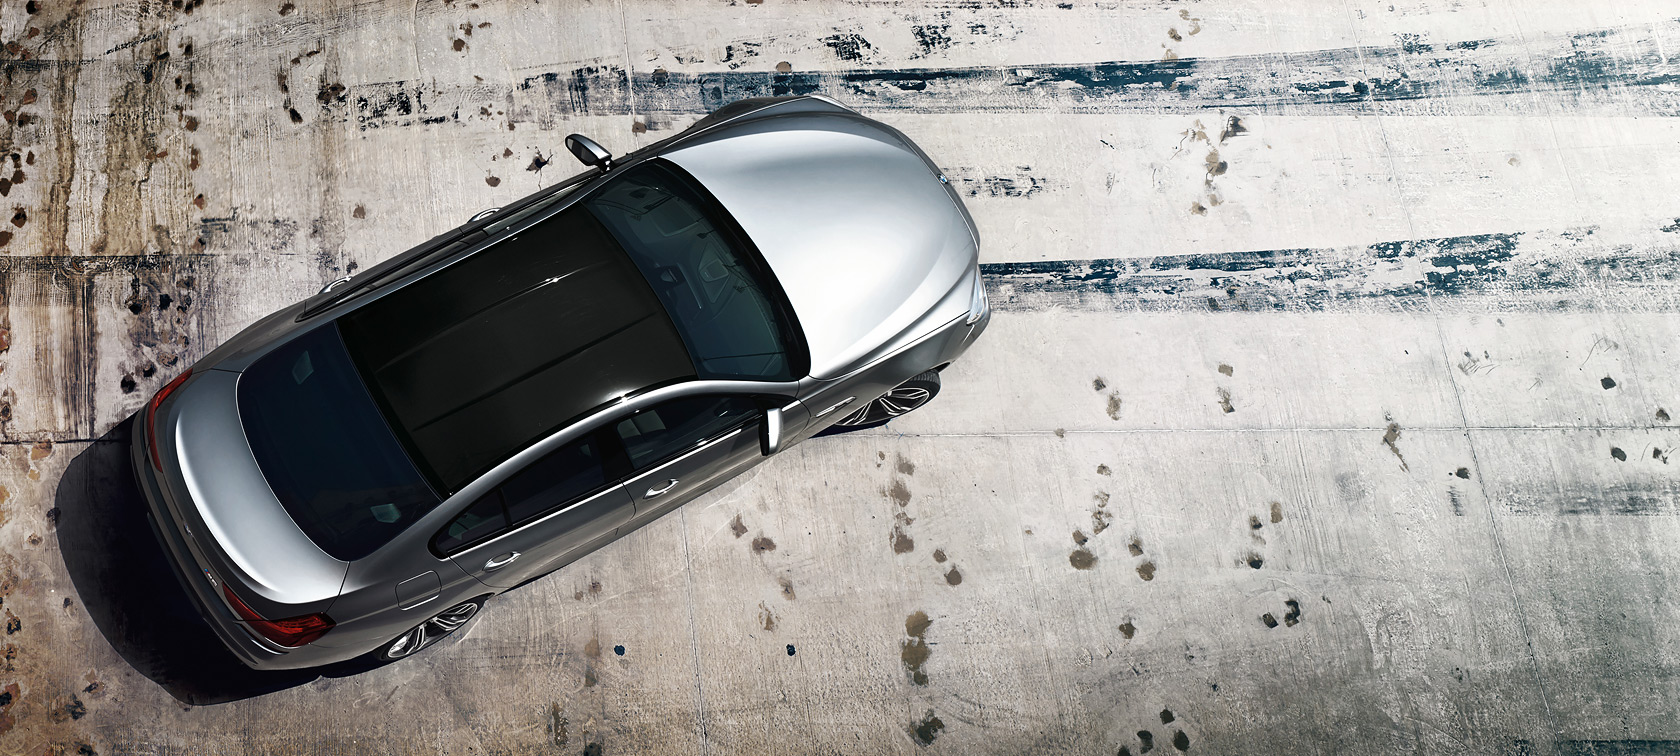 BMW M Series M6 Gran Coupe: top view of the metallic vehicle.